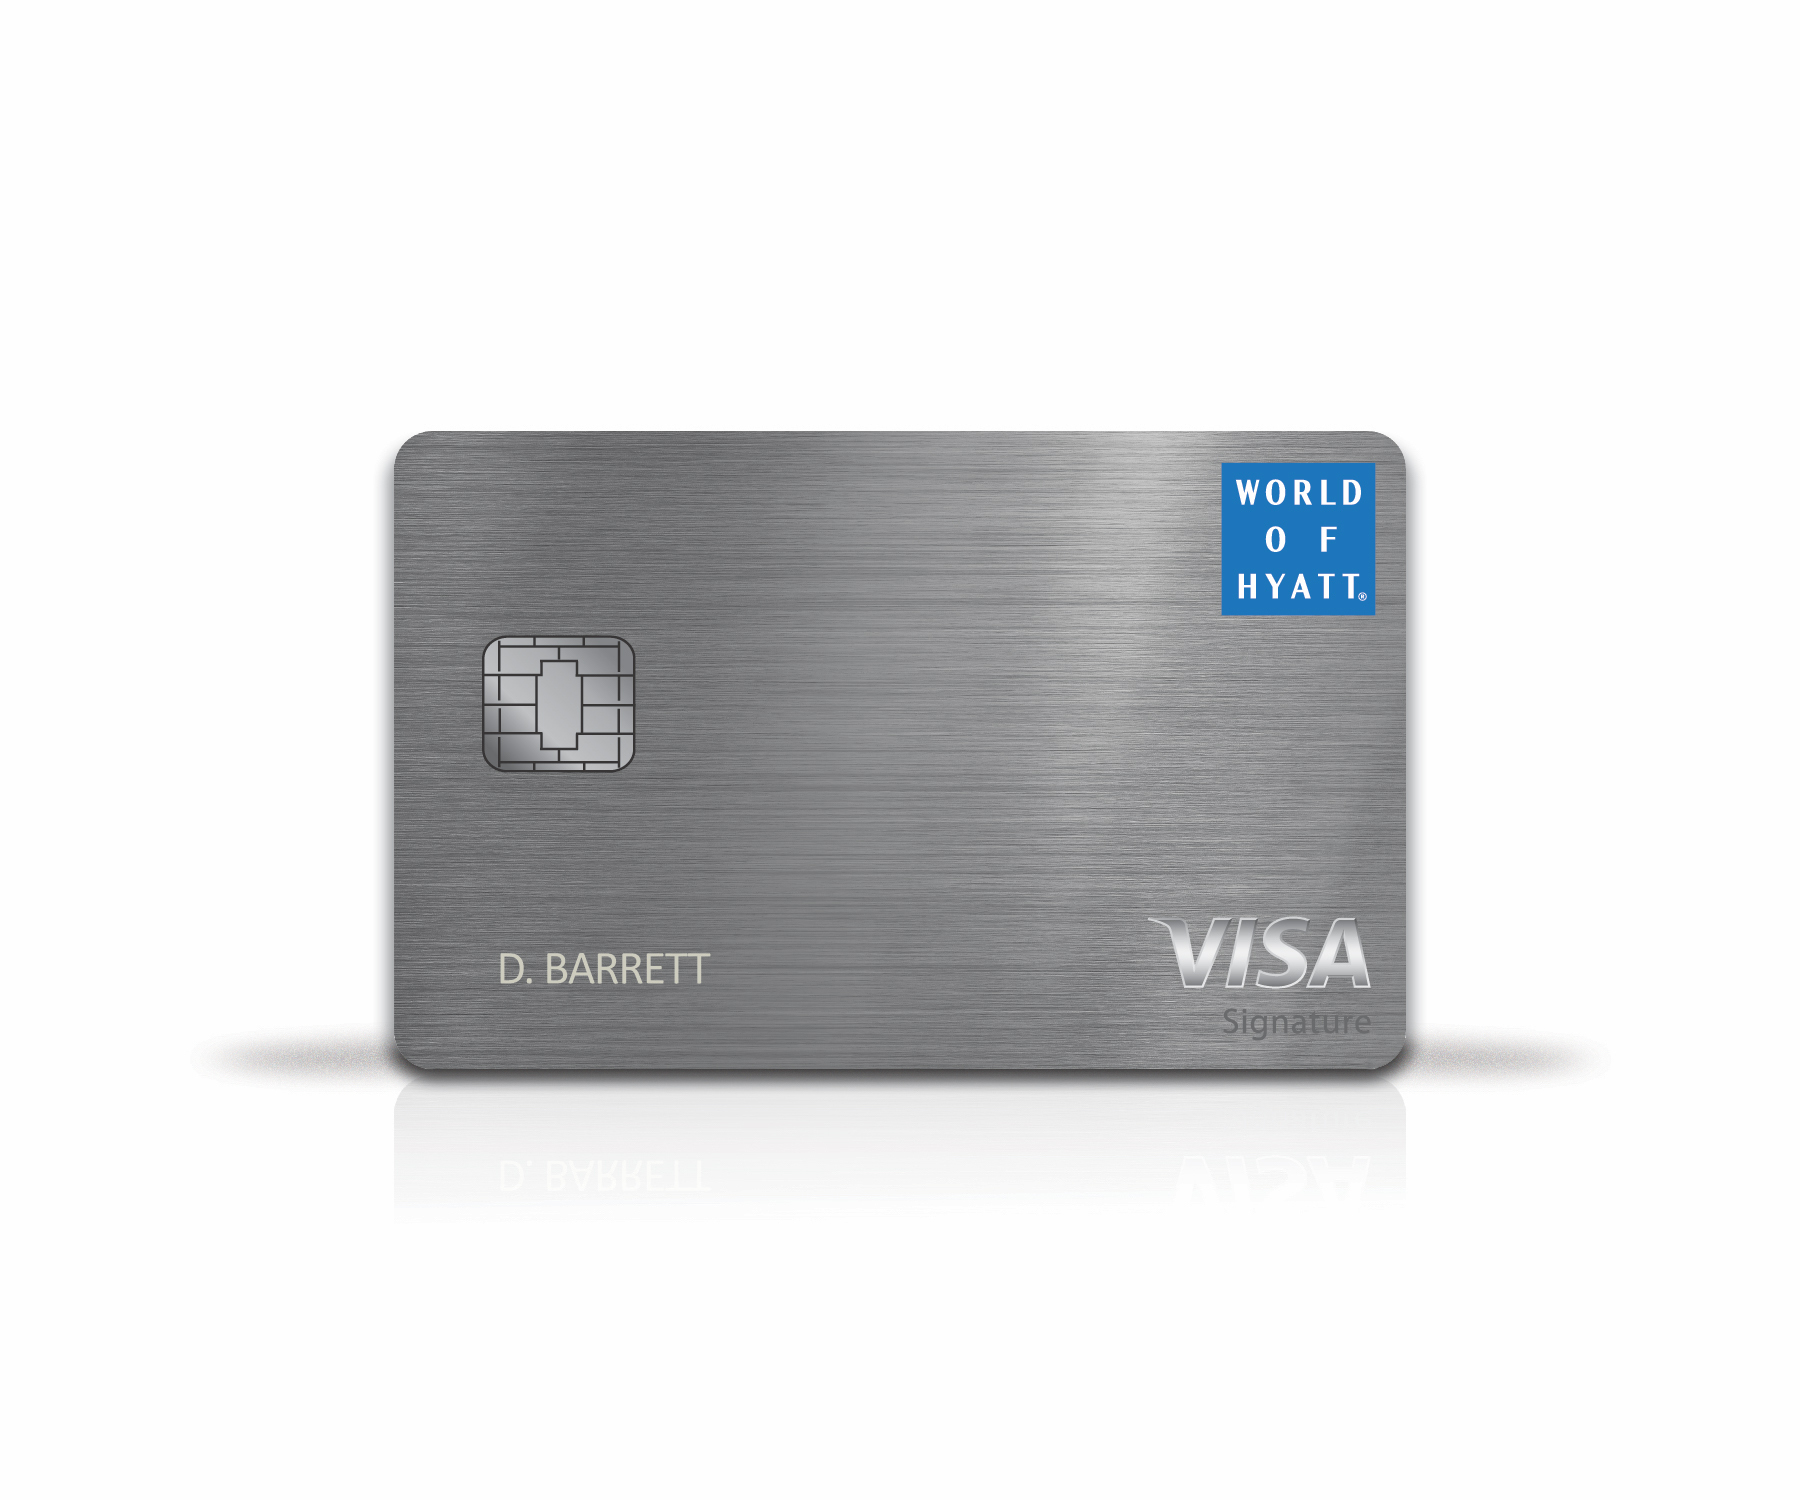 Chase and hyatt introduce the new world of hyatt credit card chase and hyatt introduce the new world of hyatt credit card business wire reheart Choice Image